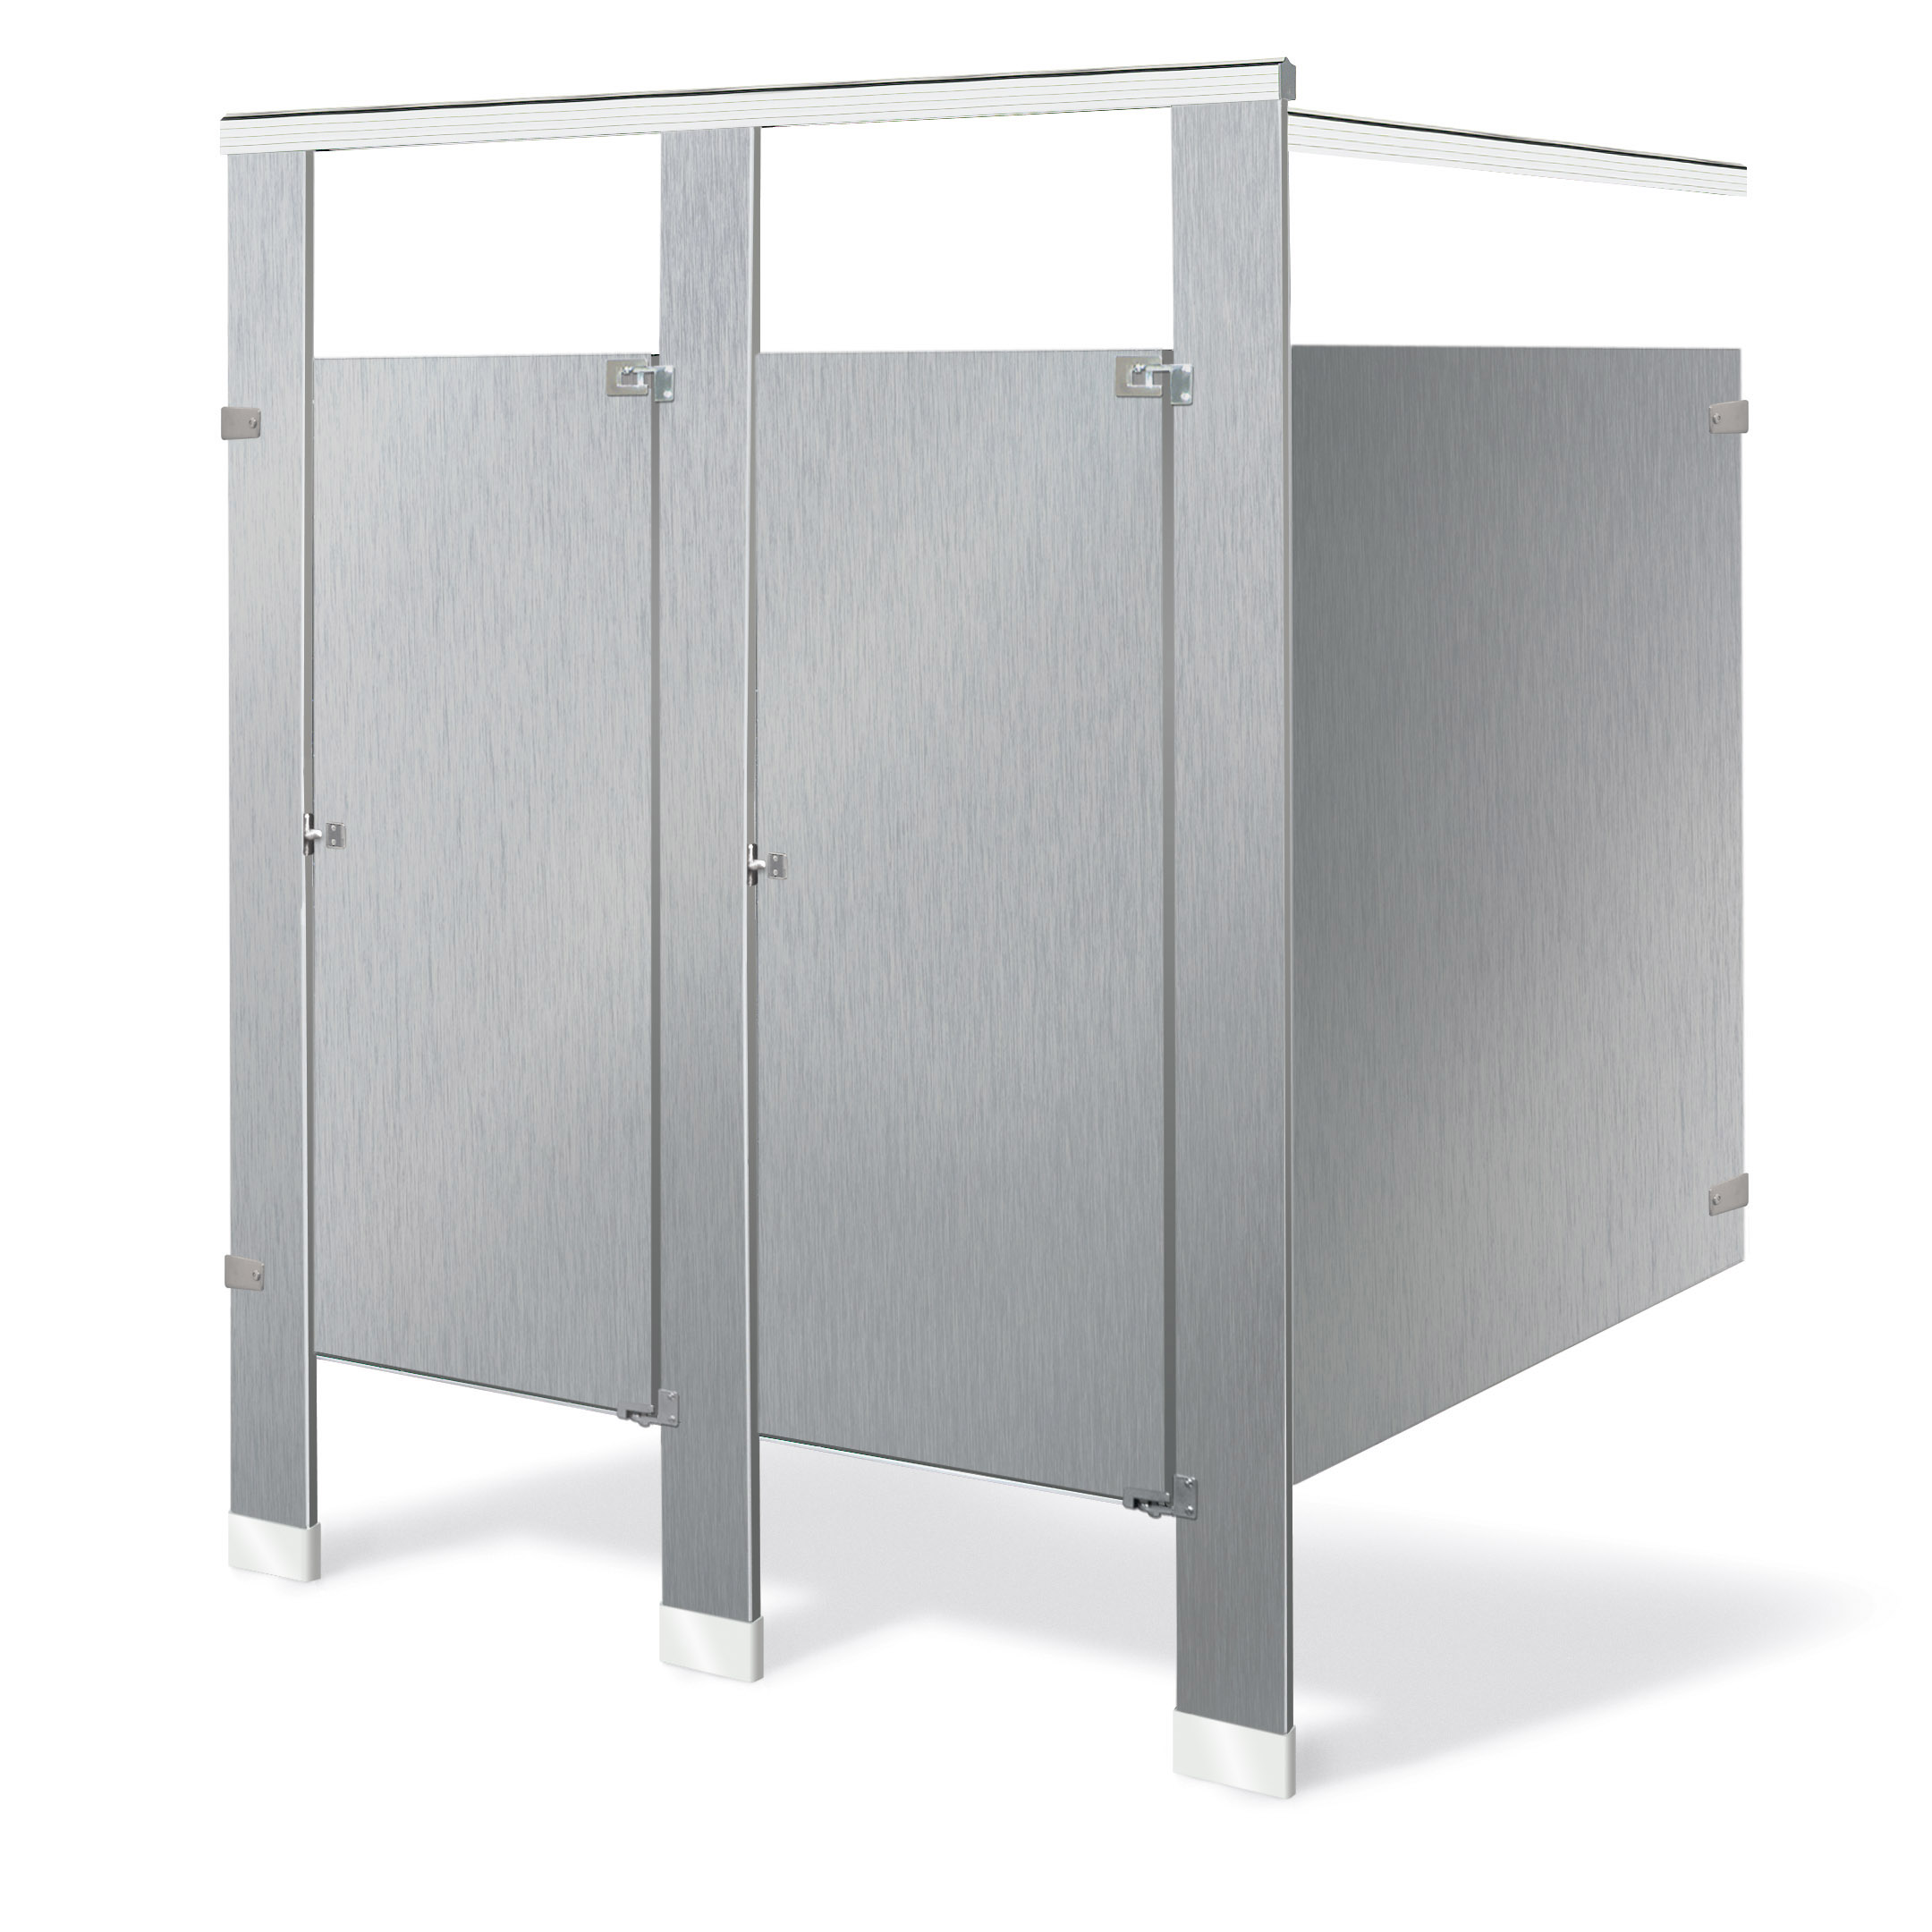 Sentinel  Floor Mounted  Overhead Braced  Series 400 Toilet partitions. Bradley Mills Baked Enamel Toilet Partitions